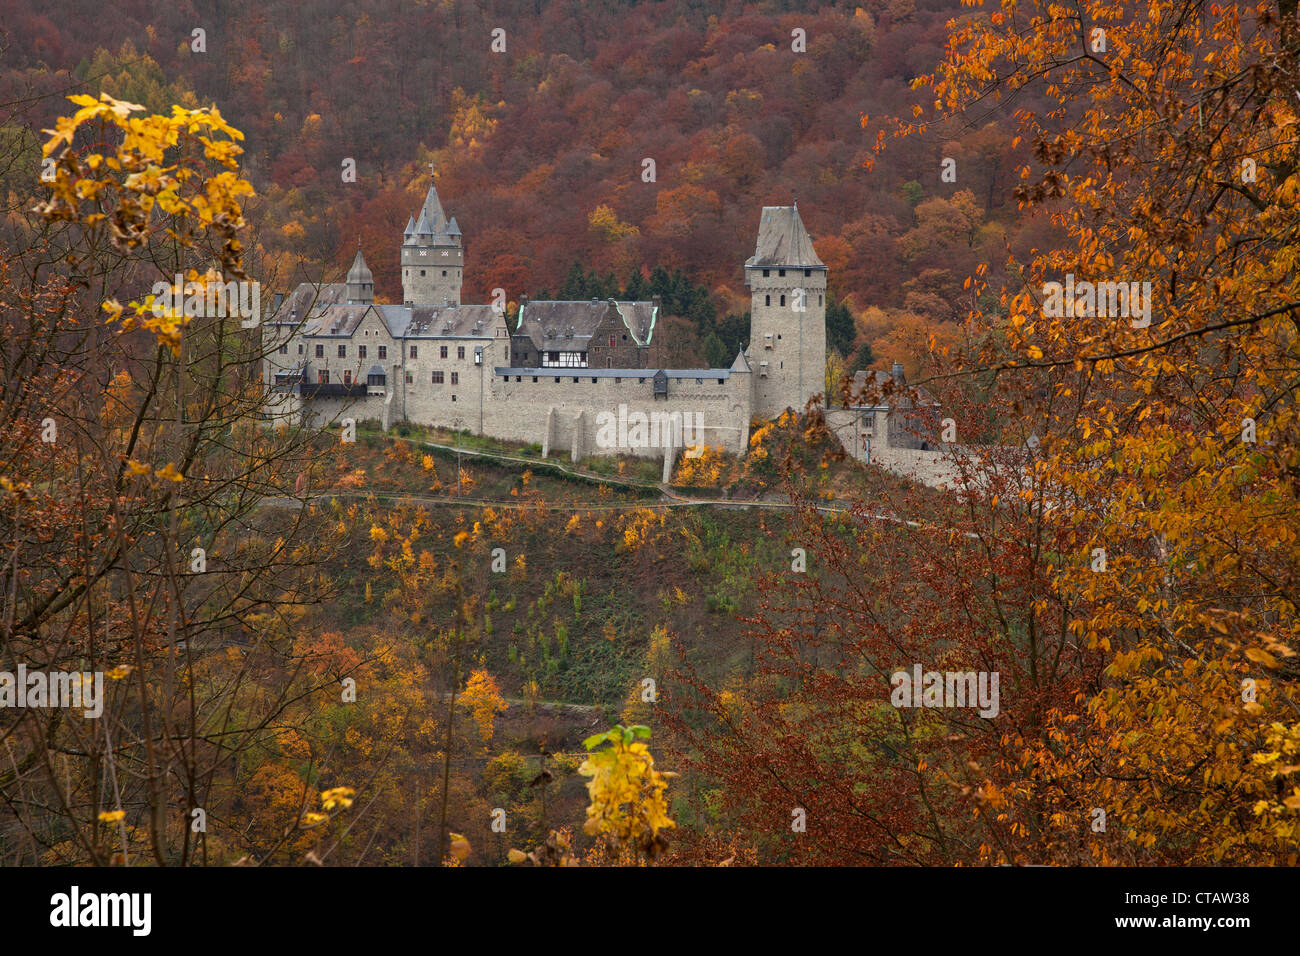 View of Altena castle on a spur, Sauerland, North Rhine-Westphalia, Germany, Europe - Stock Image